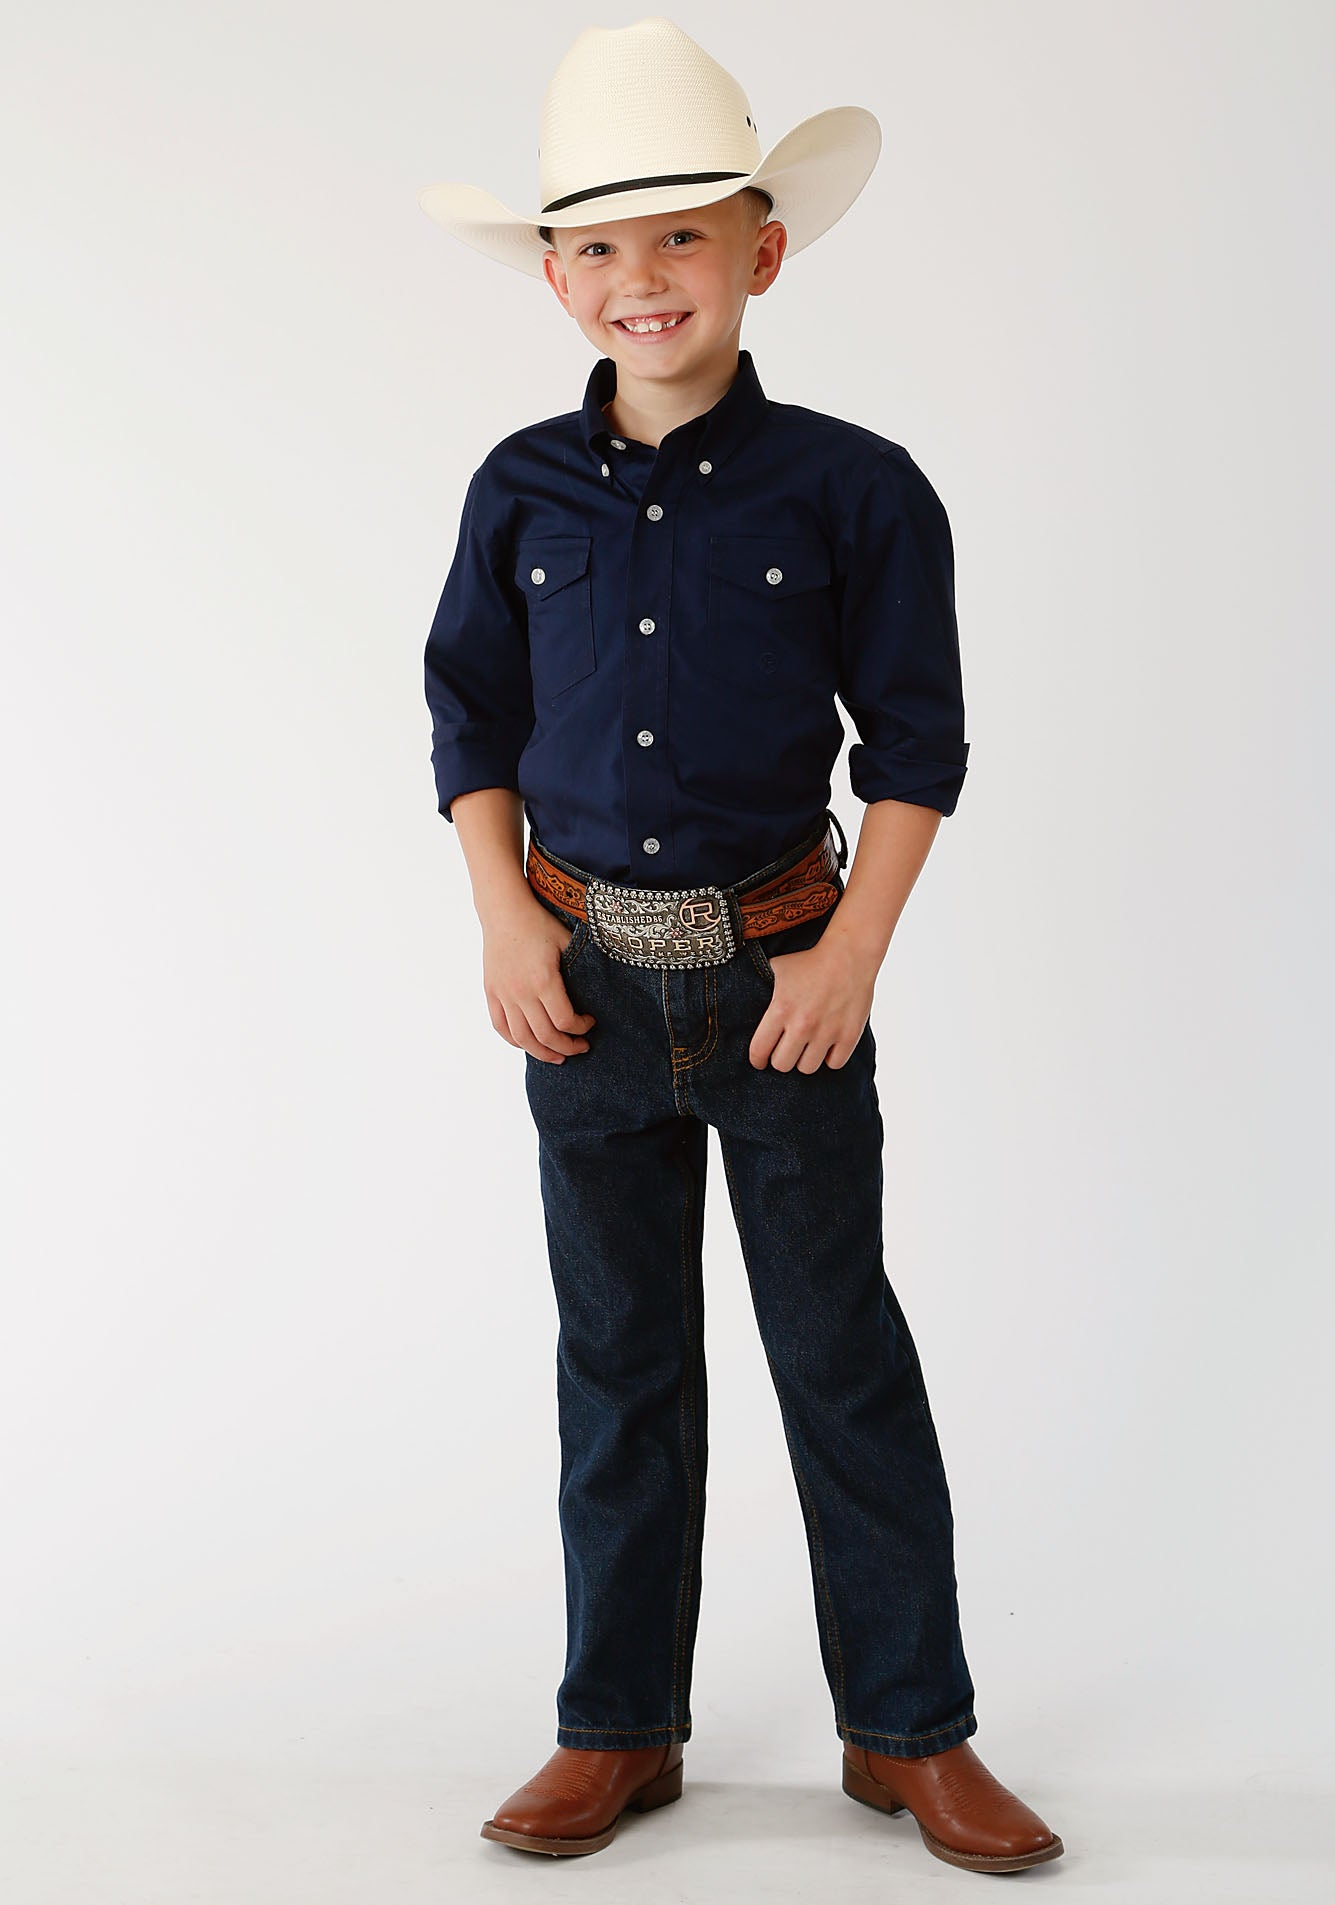 ROPER BOYS BLUE 00068 SOLID POPLIN - NAVY BOYS AMARILLO COLLECTION- HERITAGE LONG SLEEVE